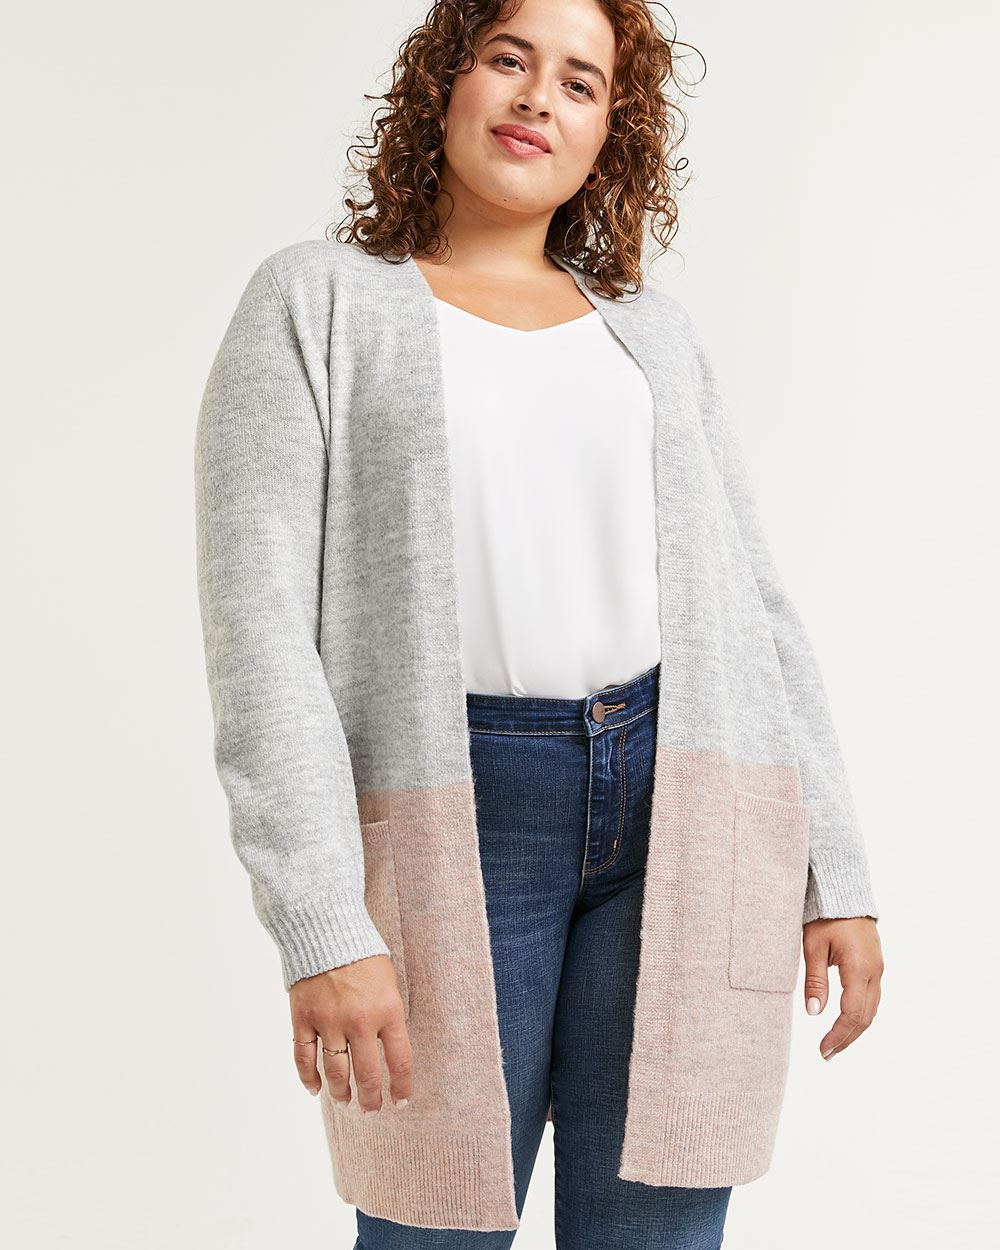 Long Balloon Sleeve Colorblock Cardigan with Pockets